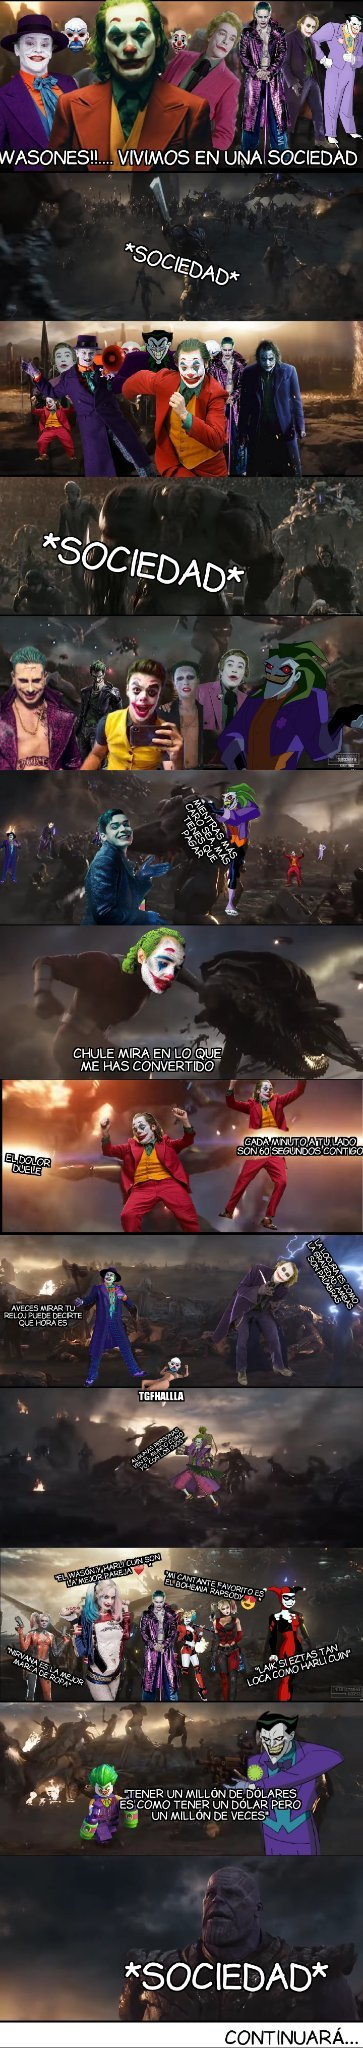 Joker: society war parte 2 - meme